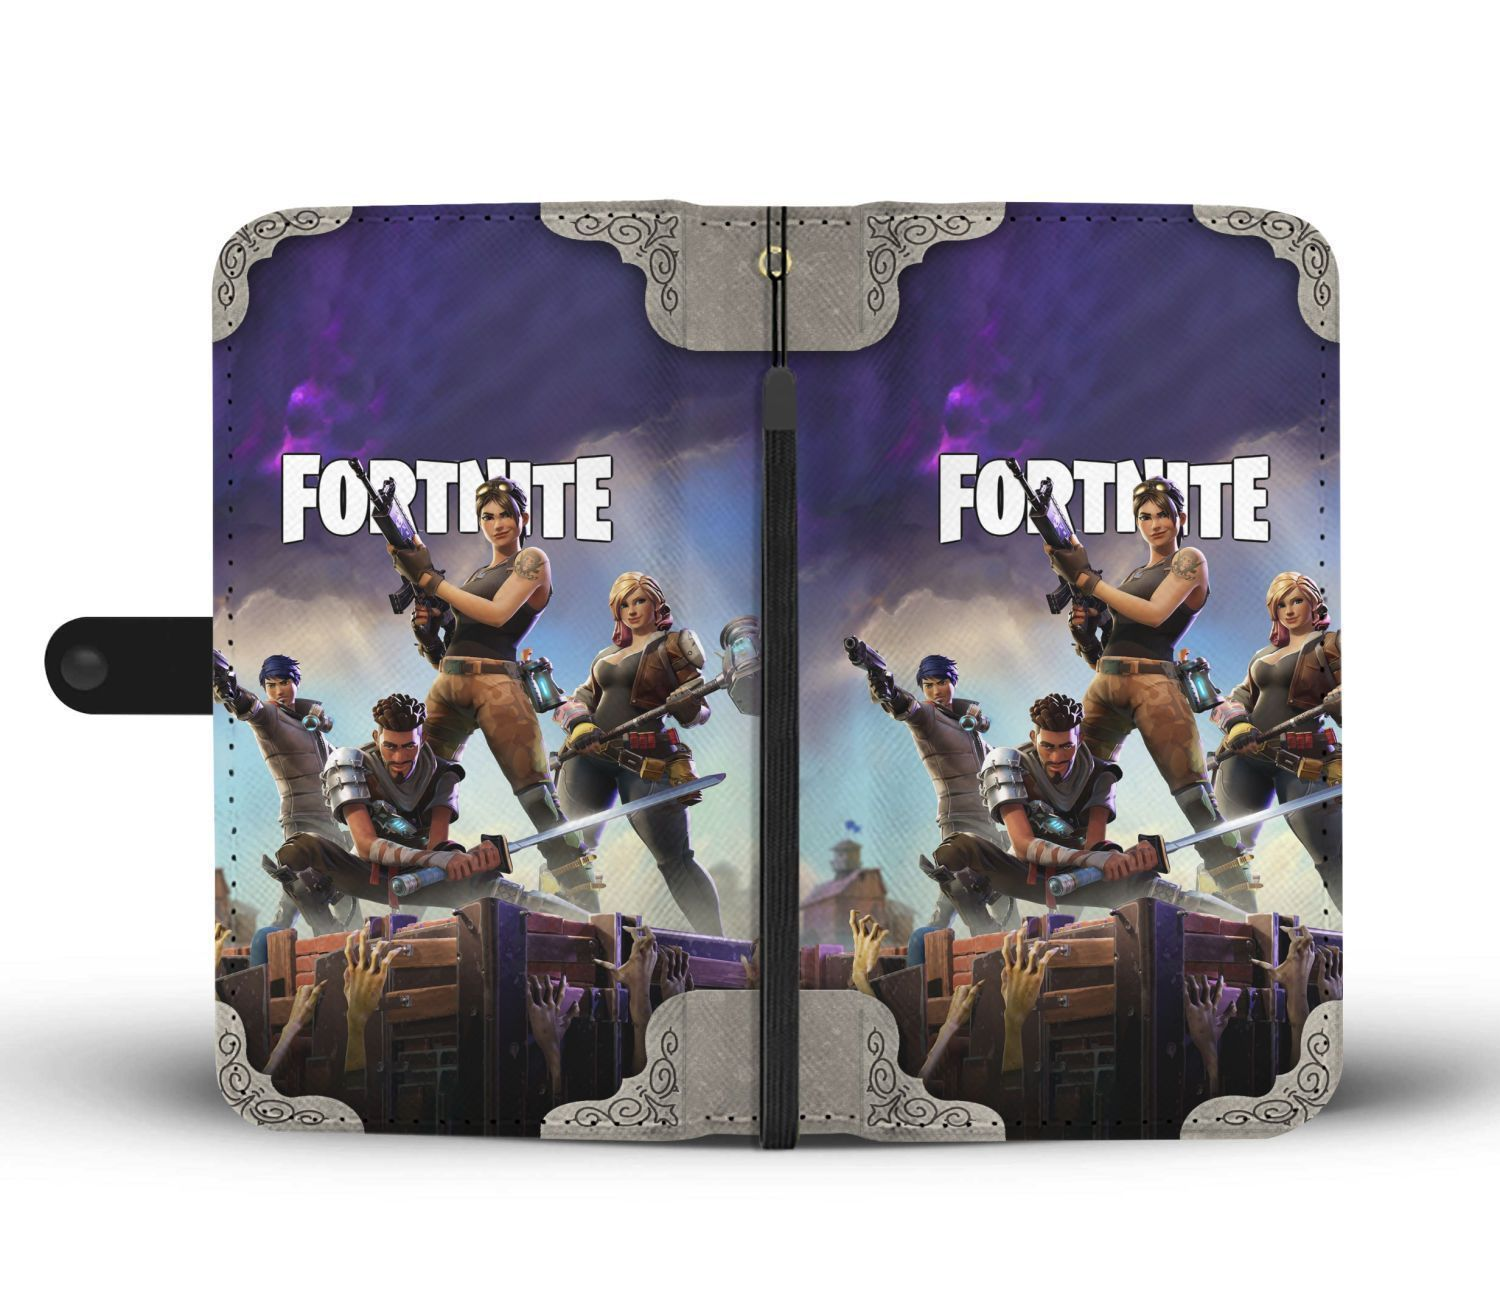 home products - samsung j7 fortnite case